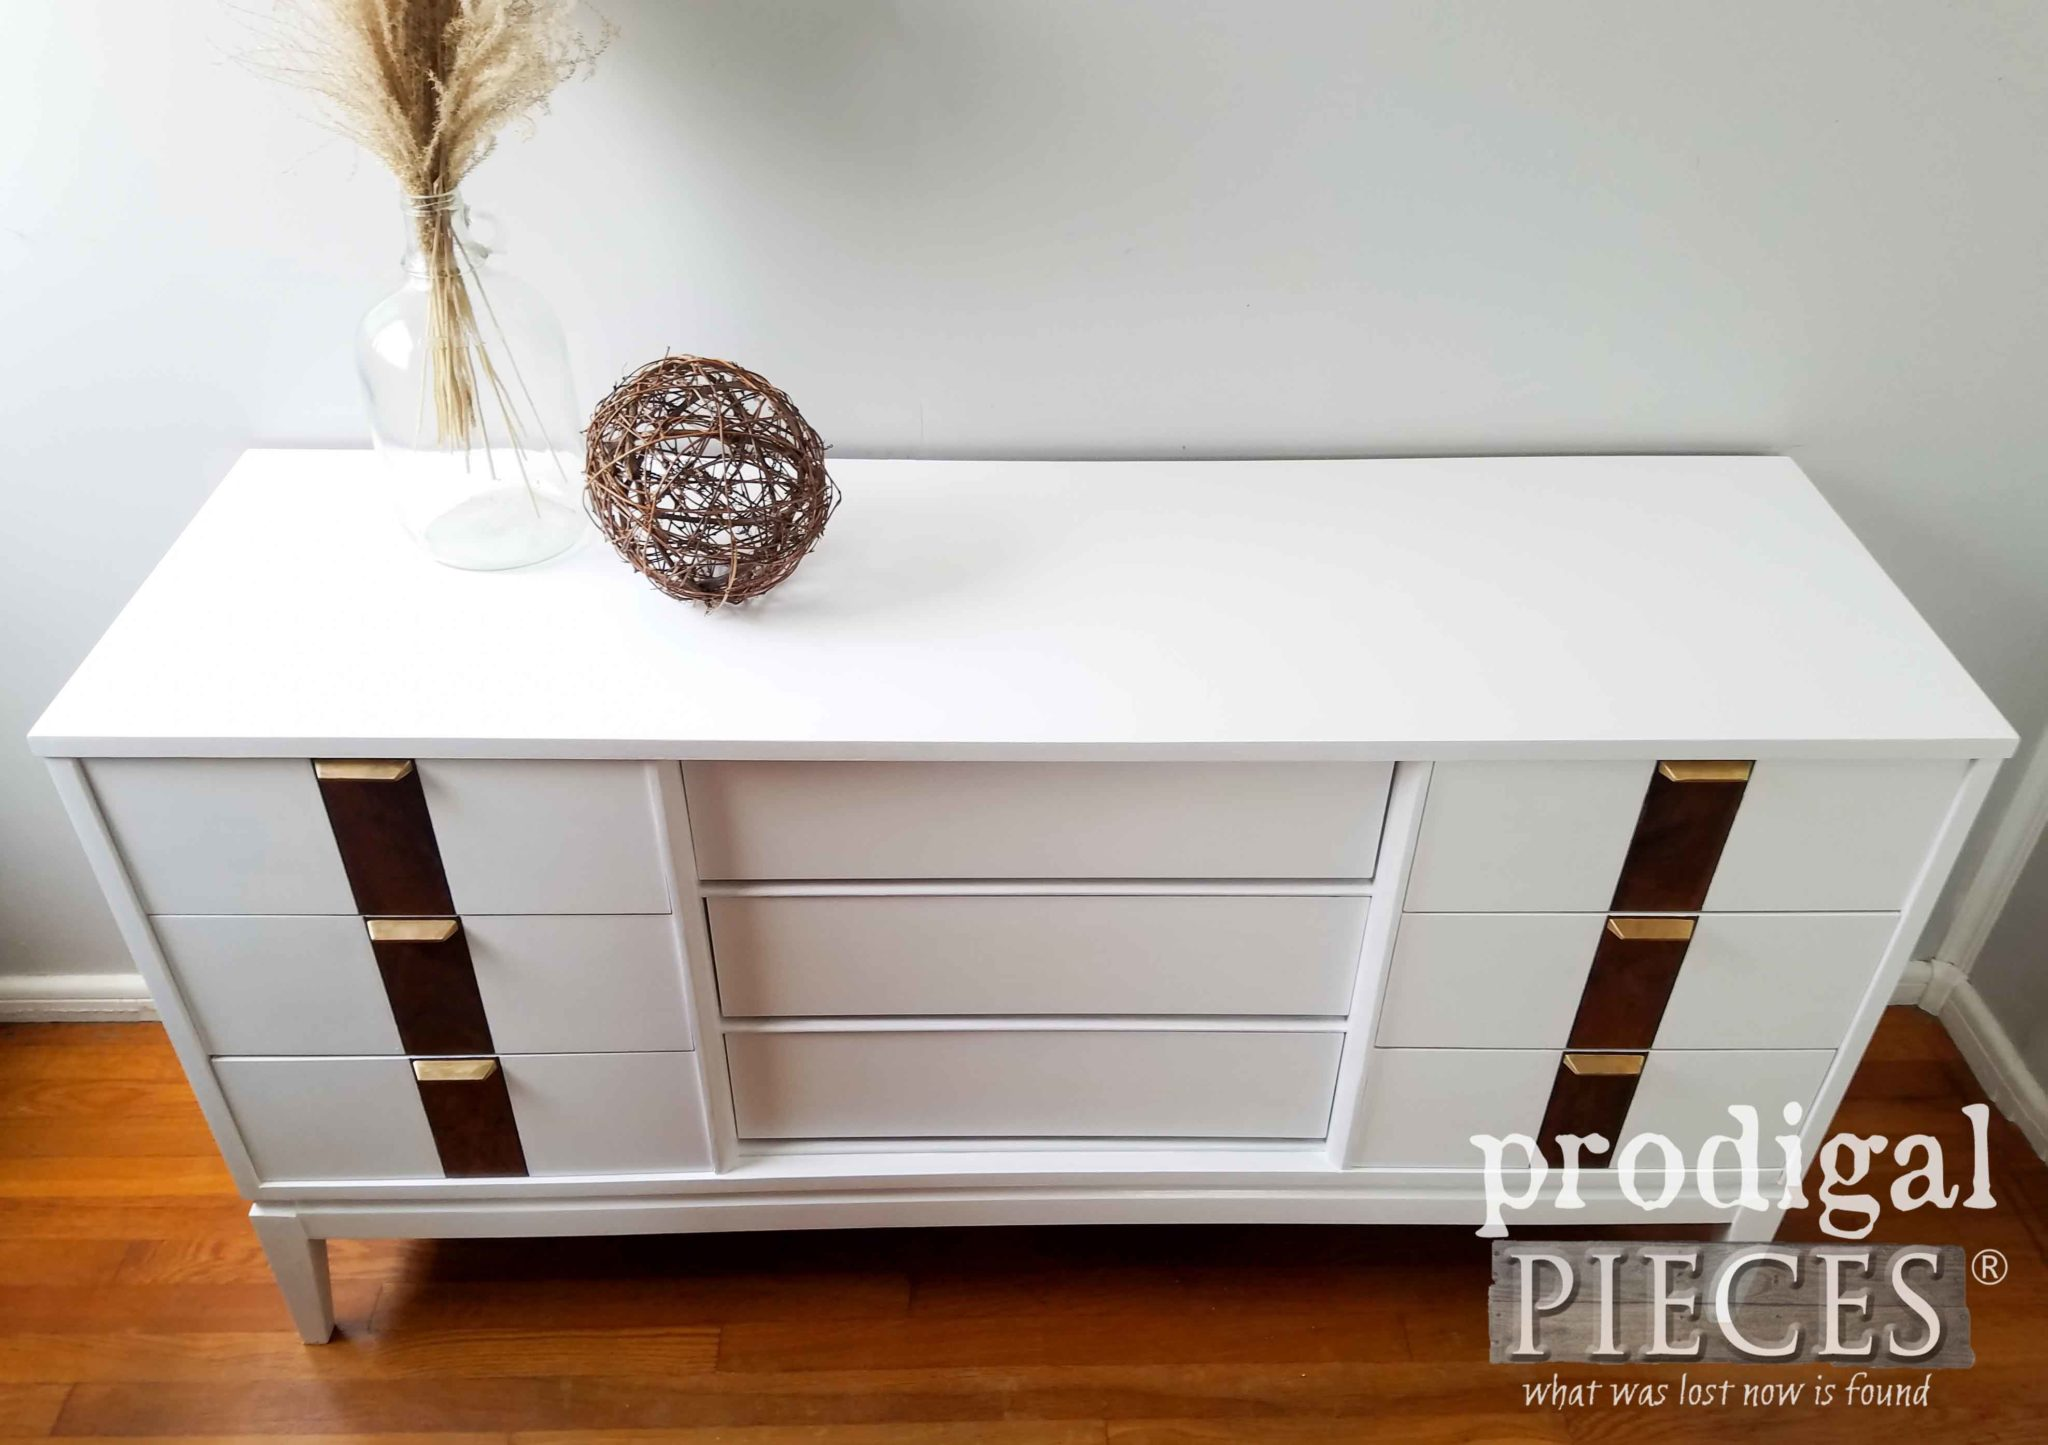 Top View of Vintage Mid Century Modern Dresser with Fresh New Look by Larissa of Prodigal Pieces | prodigalpieces.com